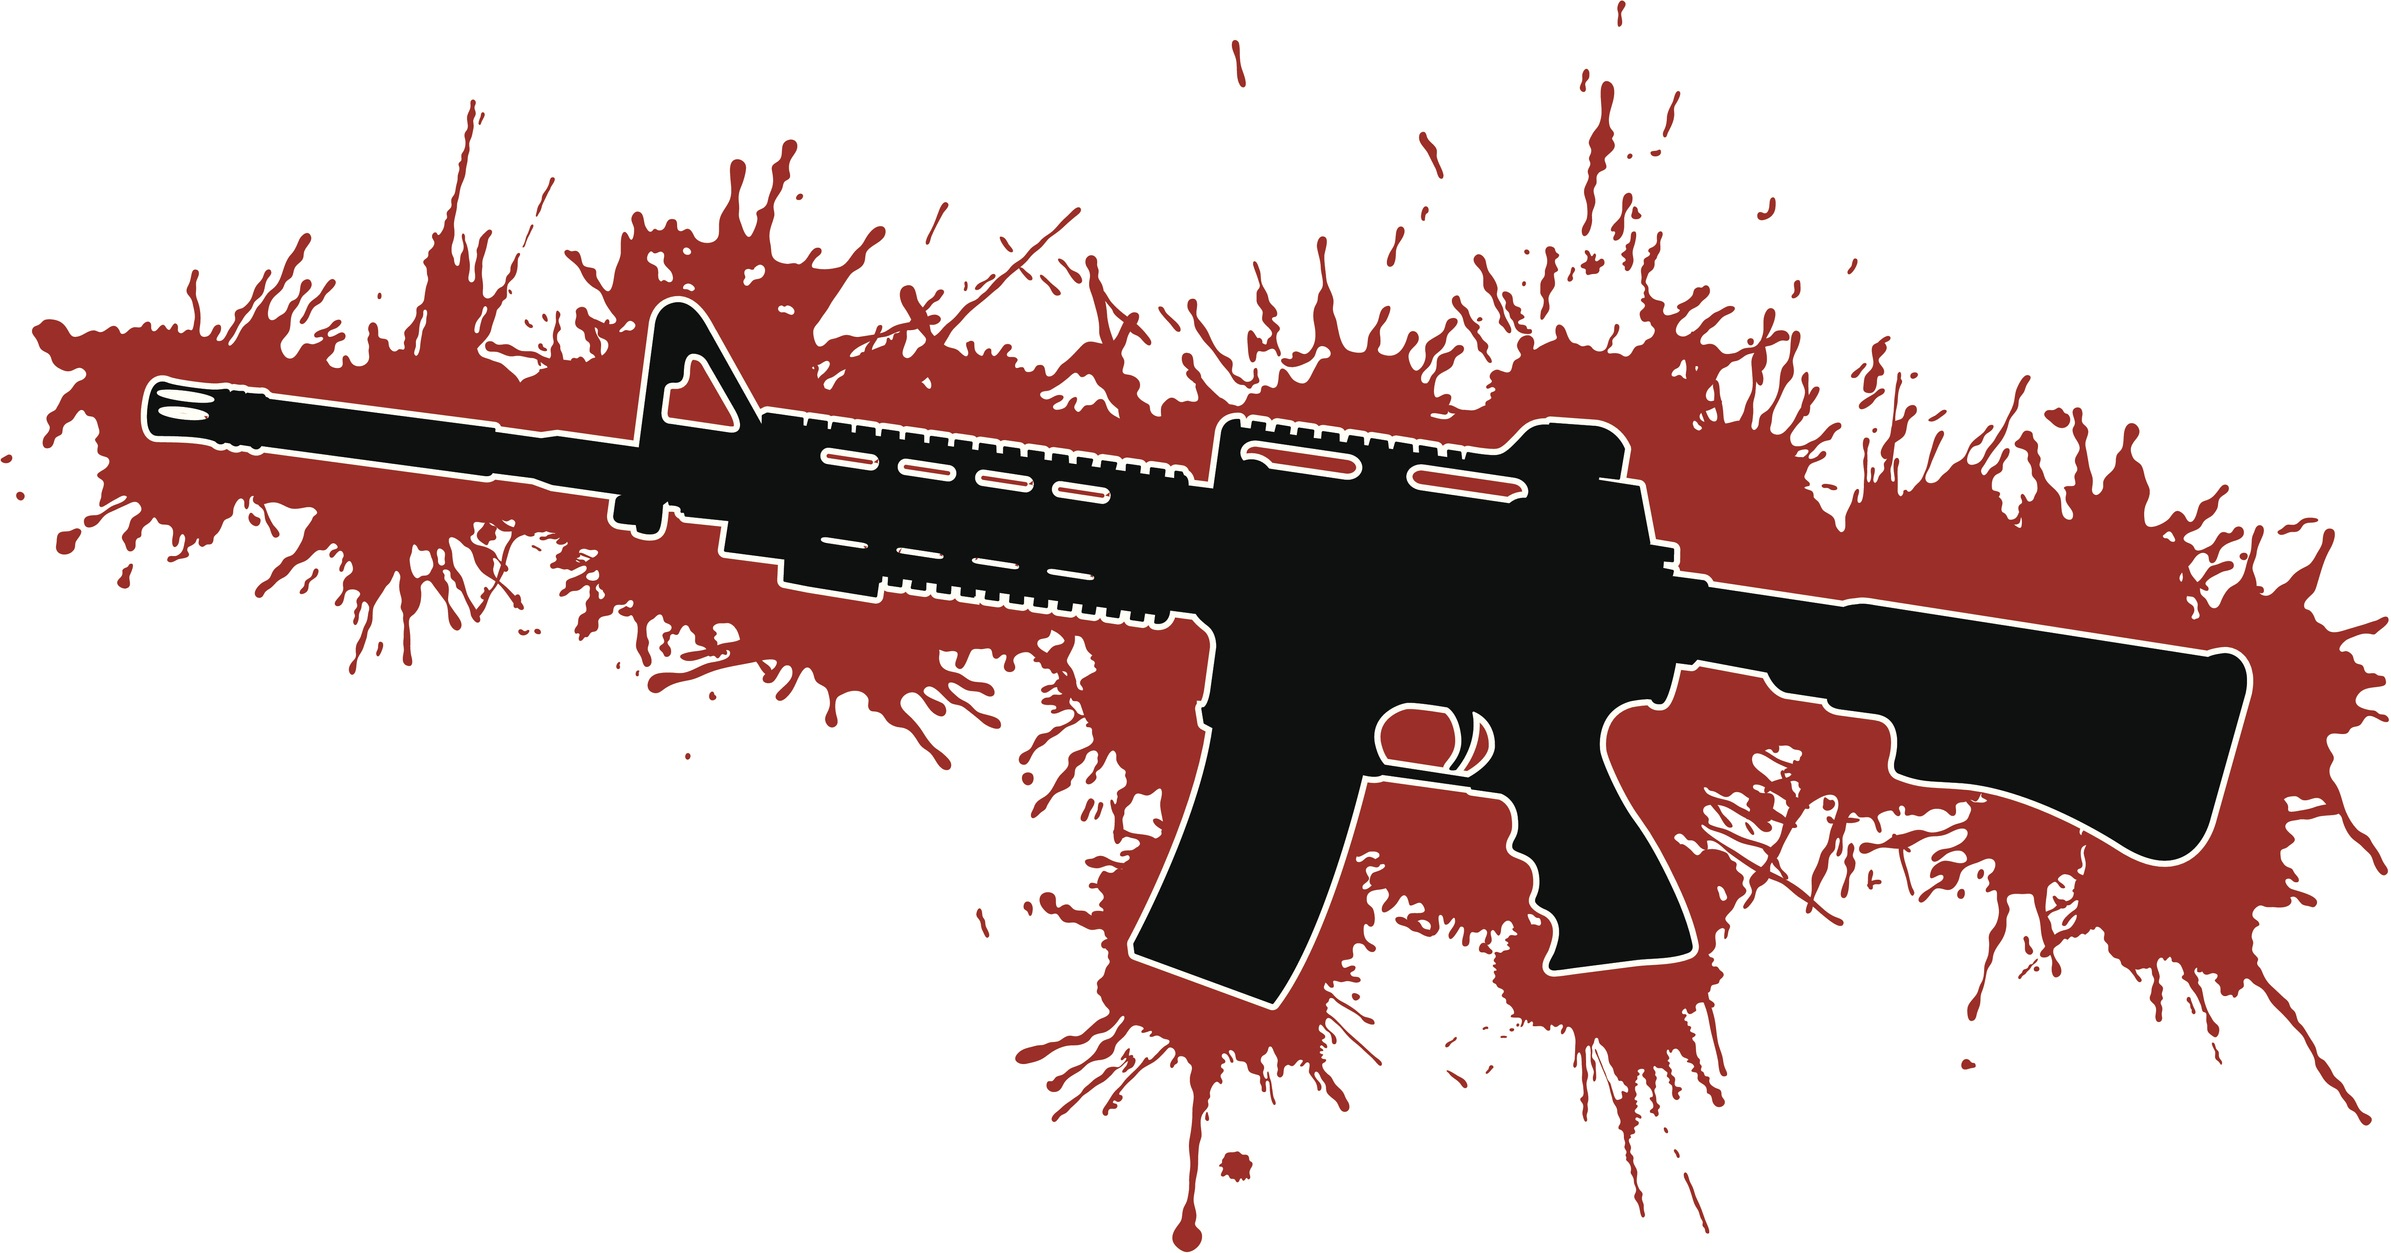 Demand solutions to the epidemic of gun violence